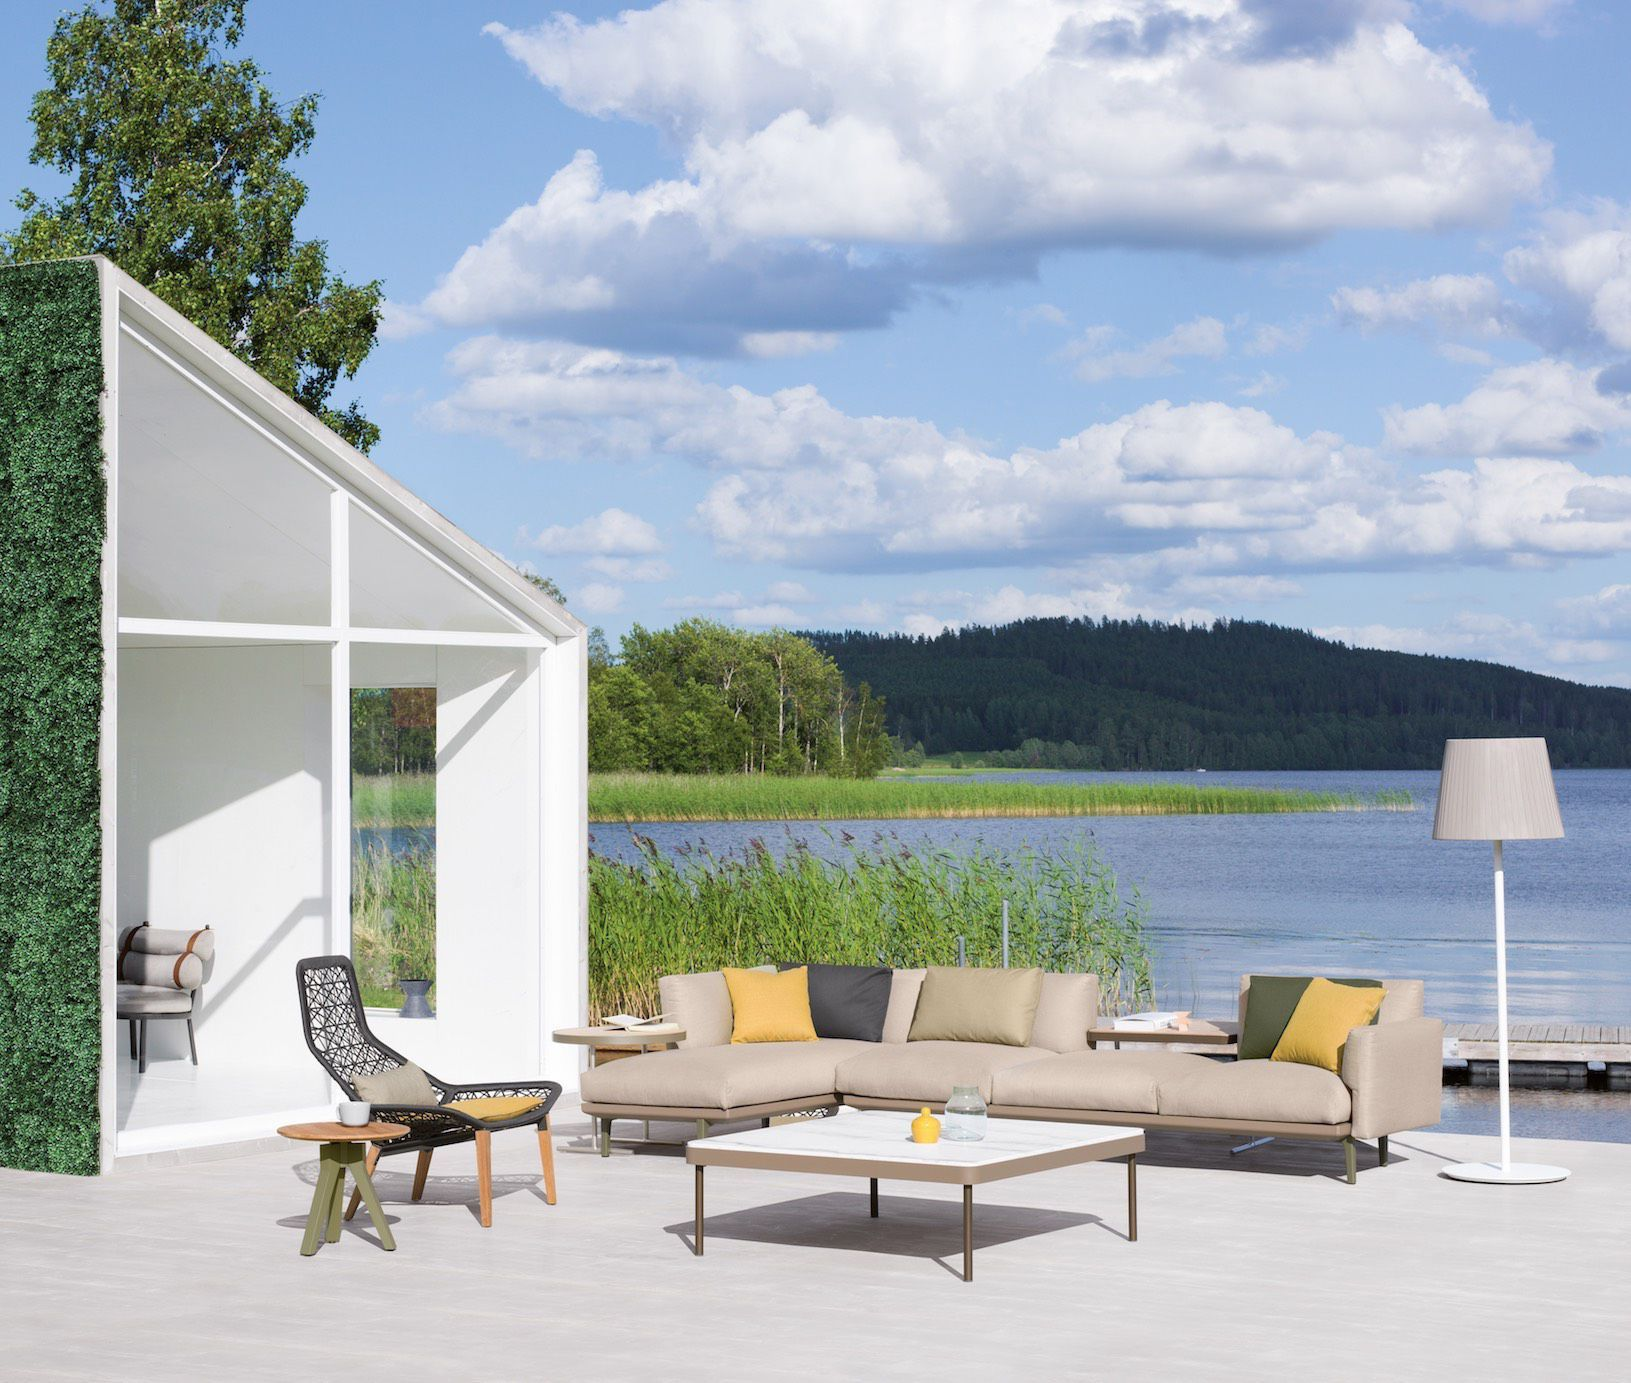 KETTAL BOMA by Rodofo Dordoni Outdoor furniture